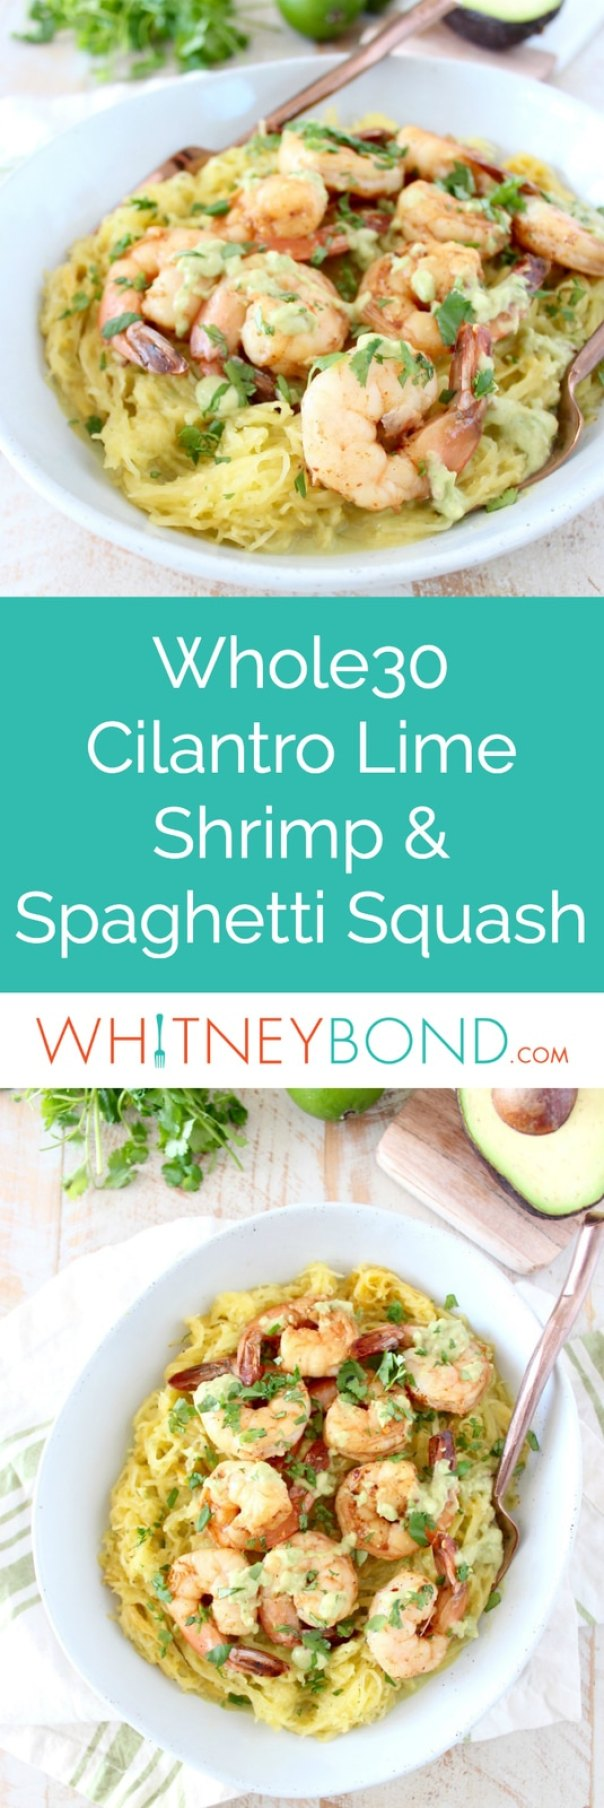 This delicious Whole30 recipe combines roasted spaghetti squash and green chili avocado sauce with cilantro lime shrimp for a healthy, gluten free and dairy free meal!